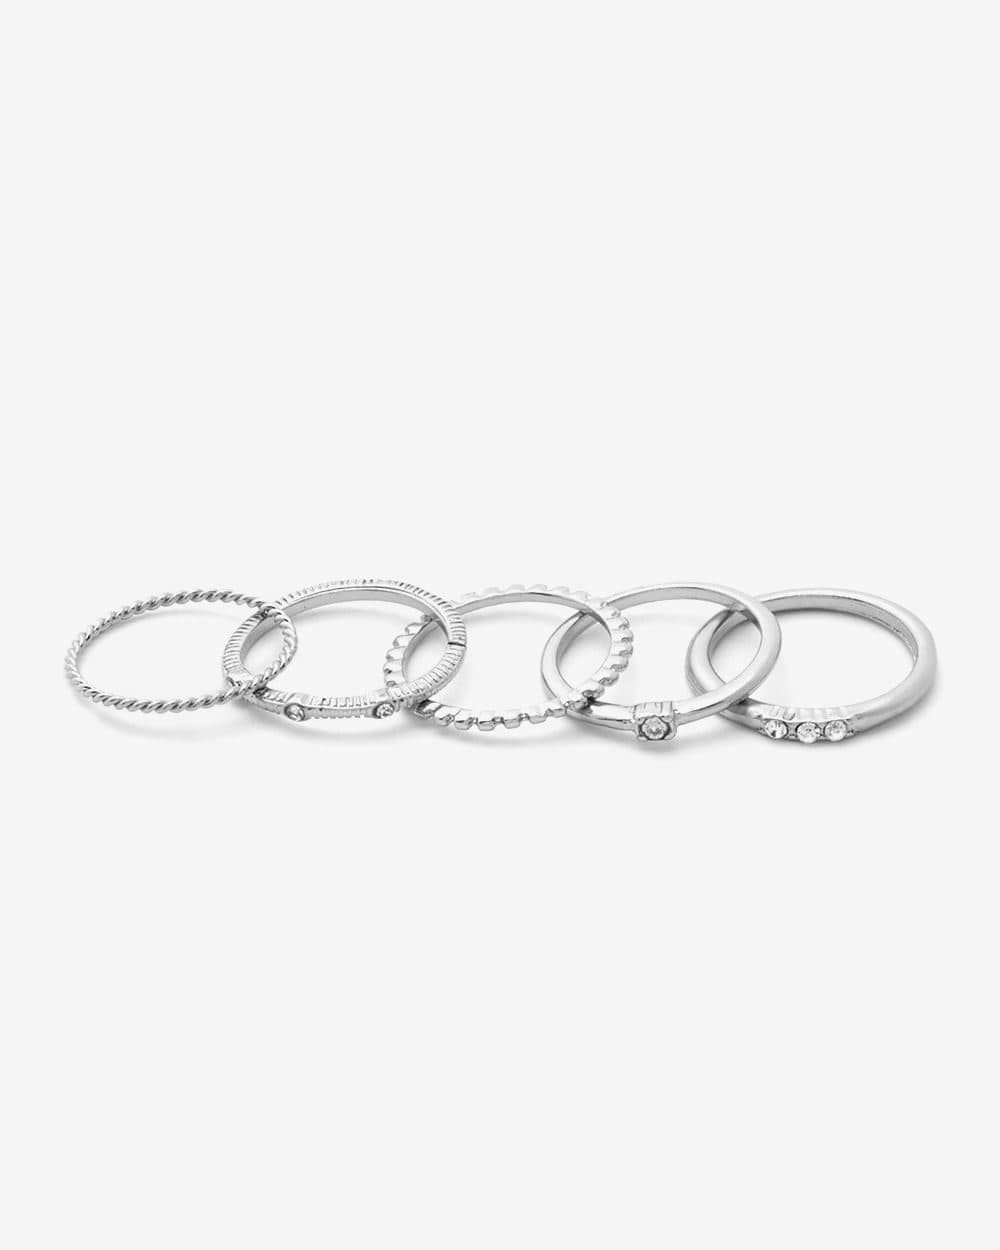 5-Piece Set of Rings